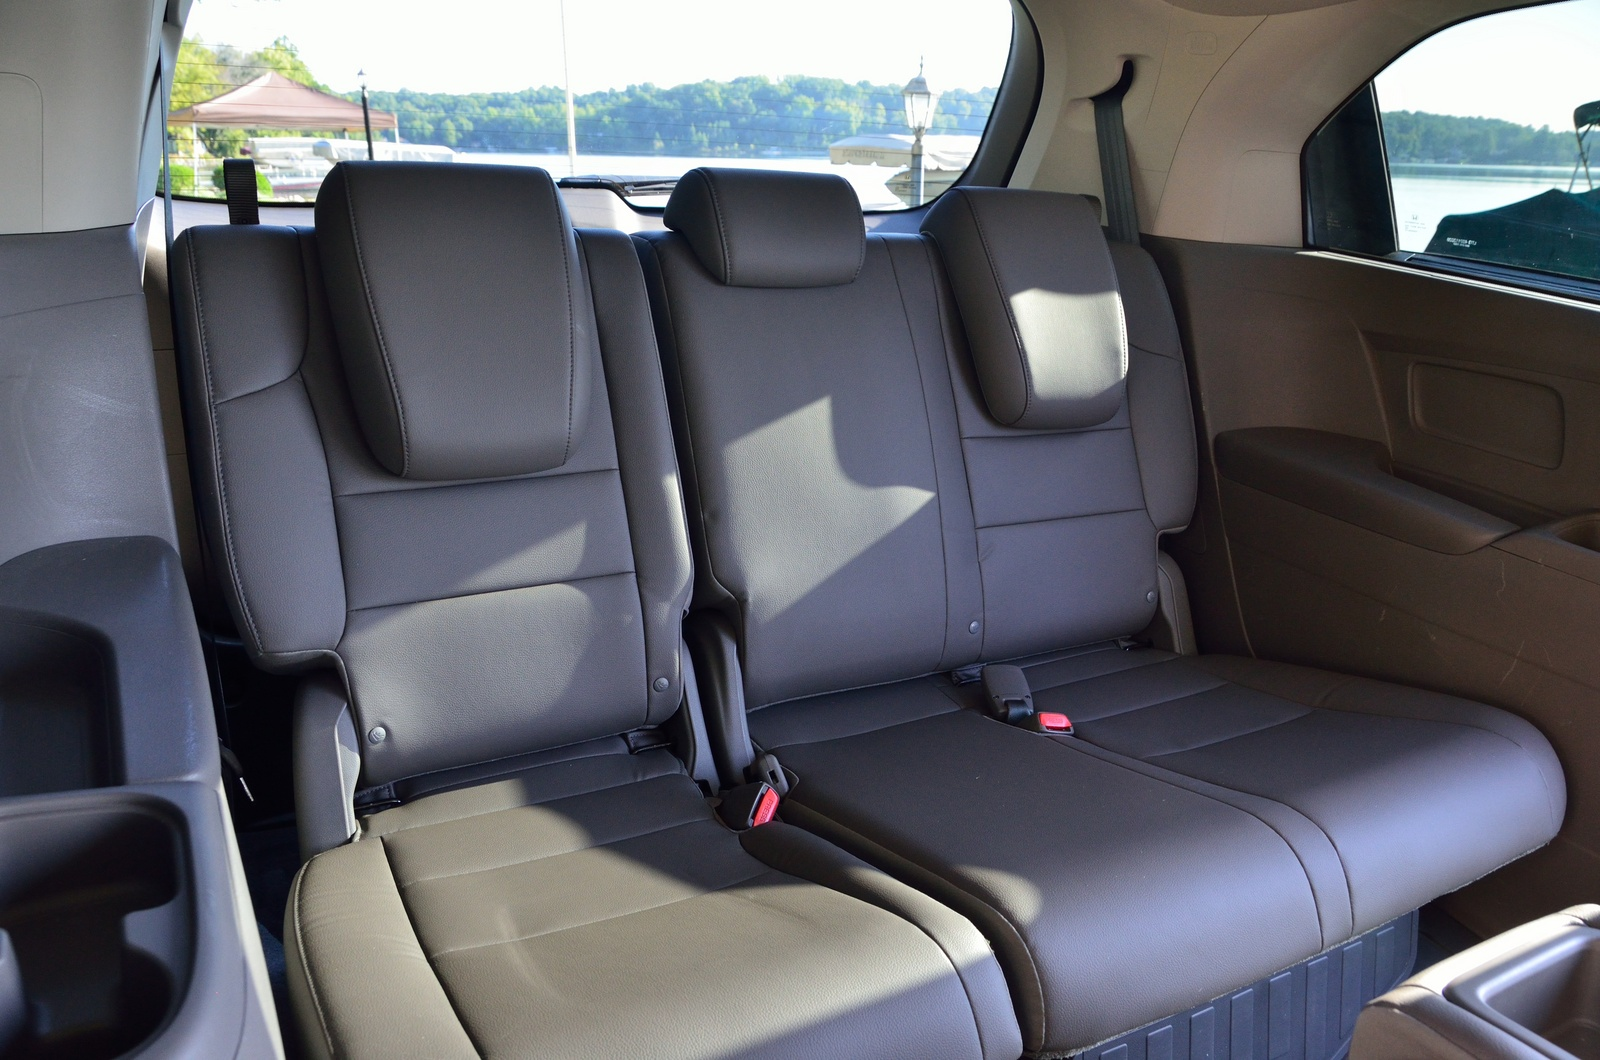 2014 Honda Odyssey Ex L Interior Pictures To Pin On Pinterest Pinsdaddy